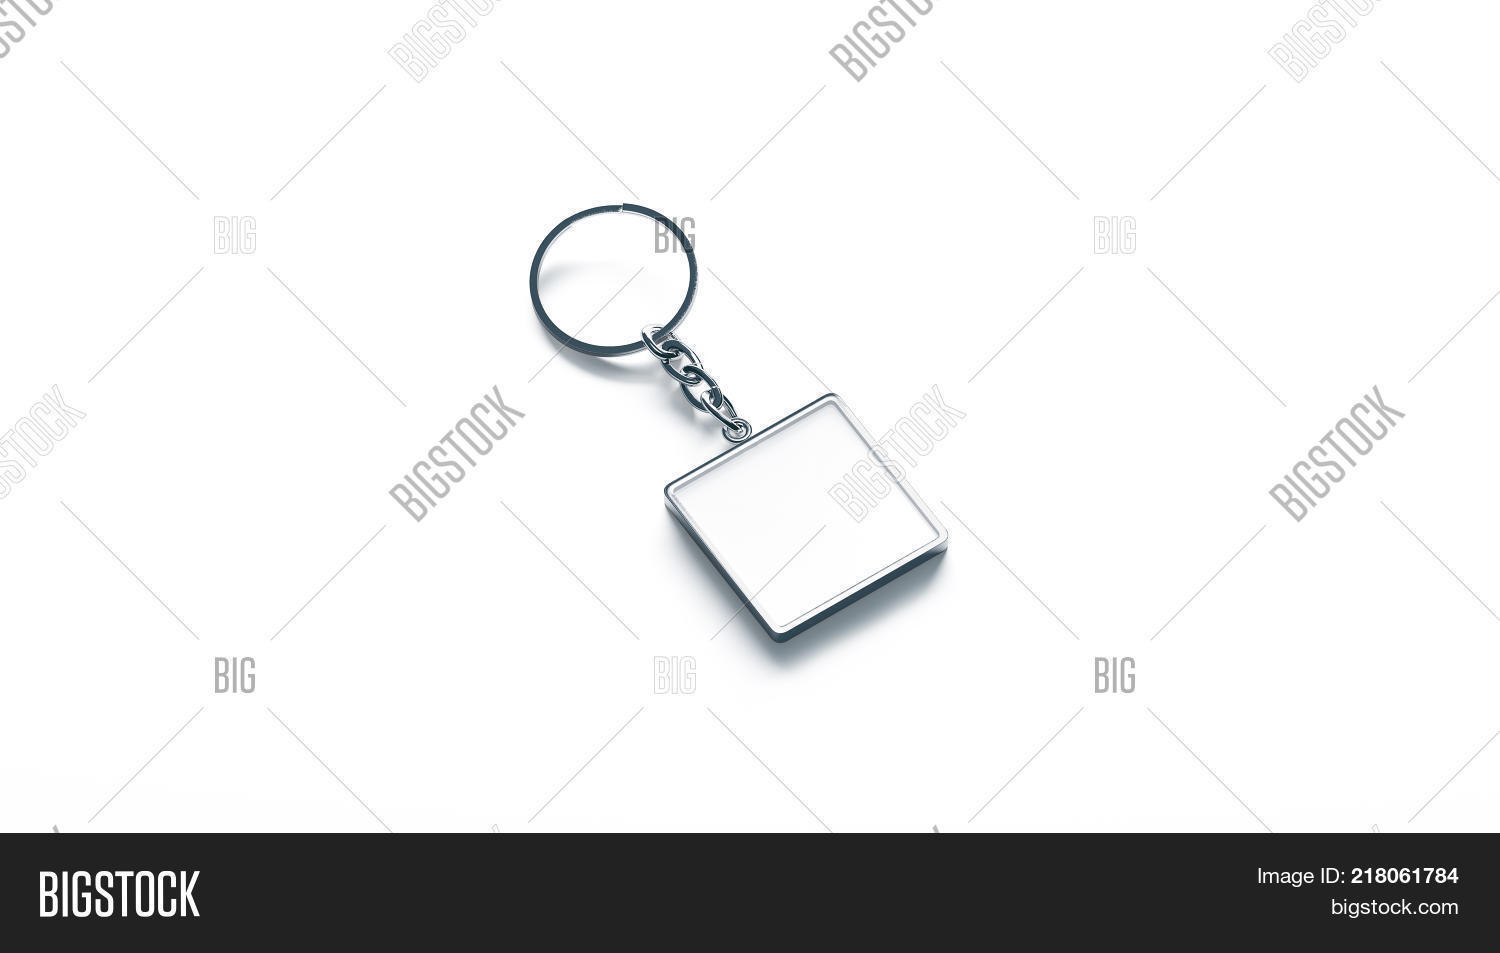 Blank metal square white key chain image photo bigstock blank metal square white key chain mock up side view 3d rendering clear silver keychain buycottarizona Gallery